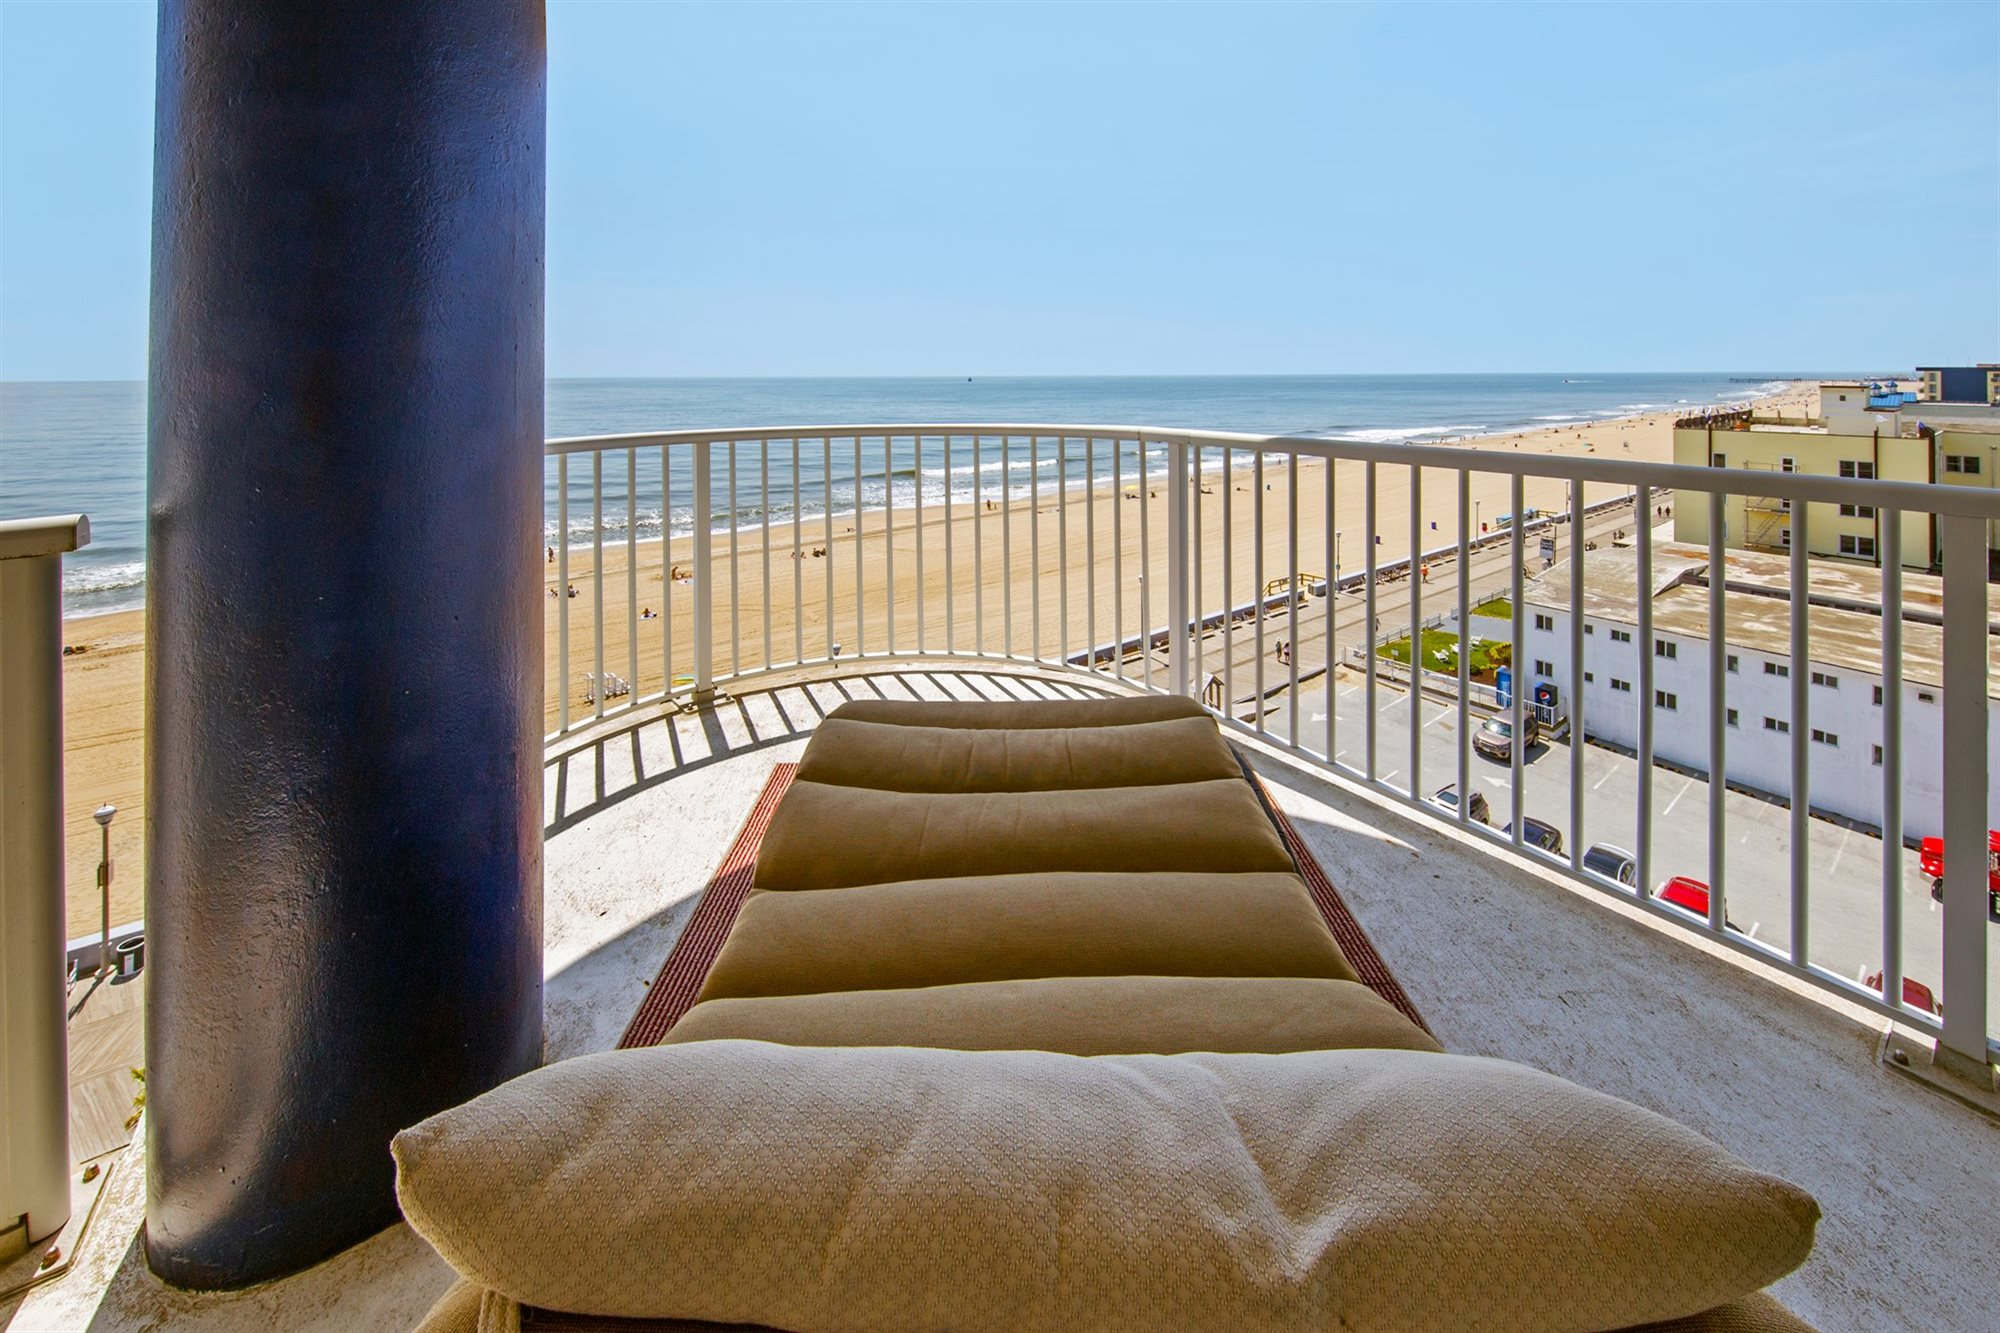 Captain's Suite Ocean View in Ocean City Maryland.